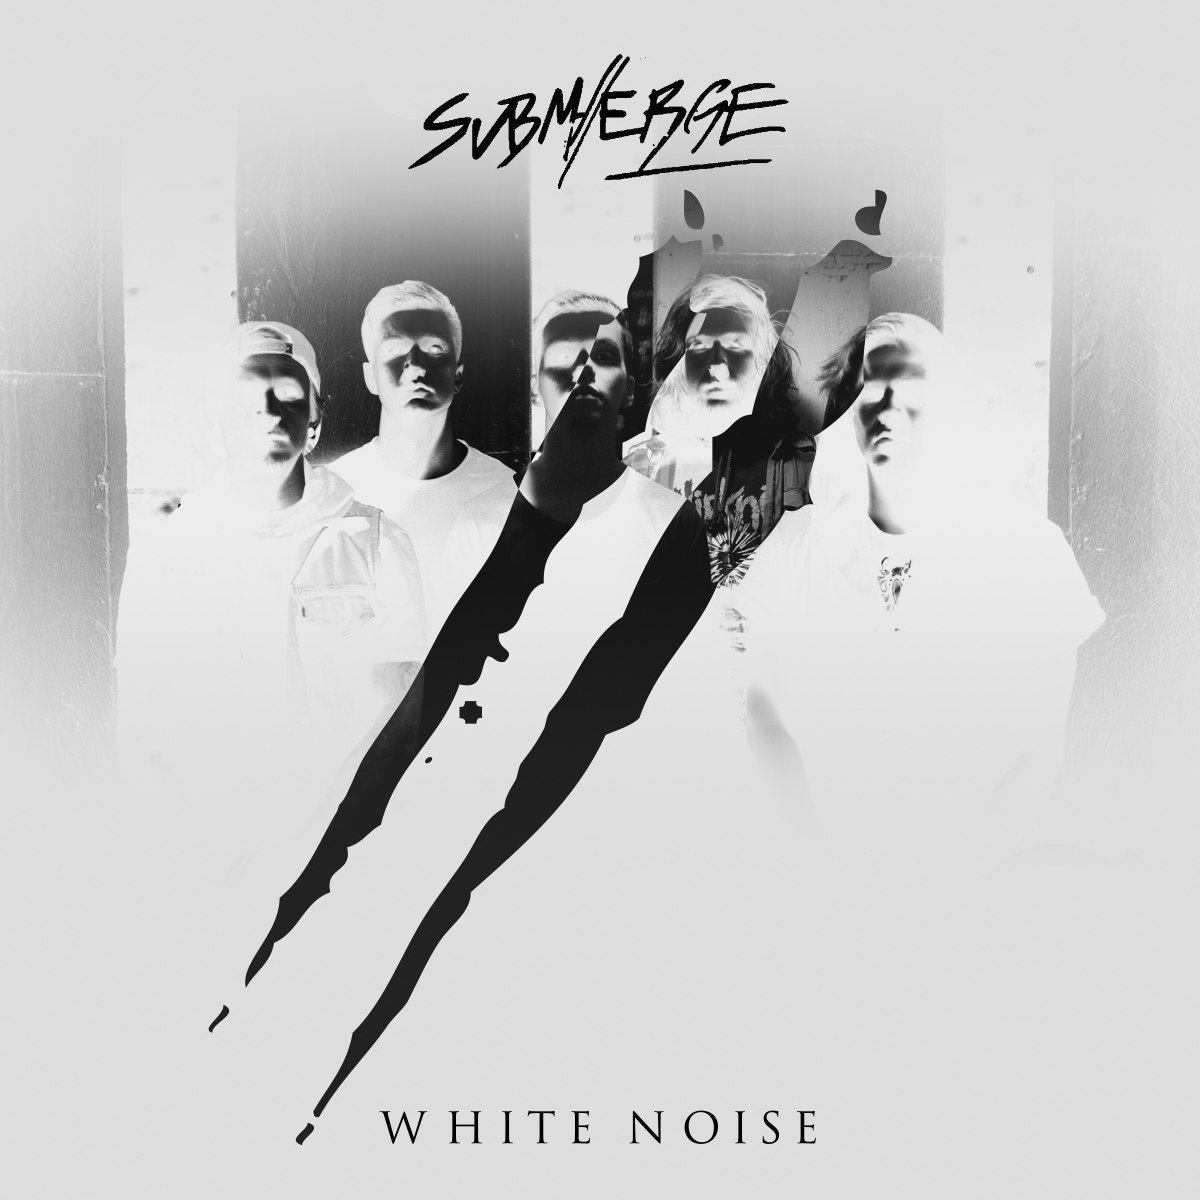 Submerge - White Noise [single] (2016)